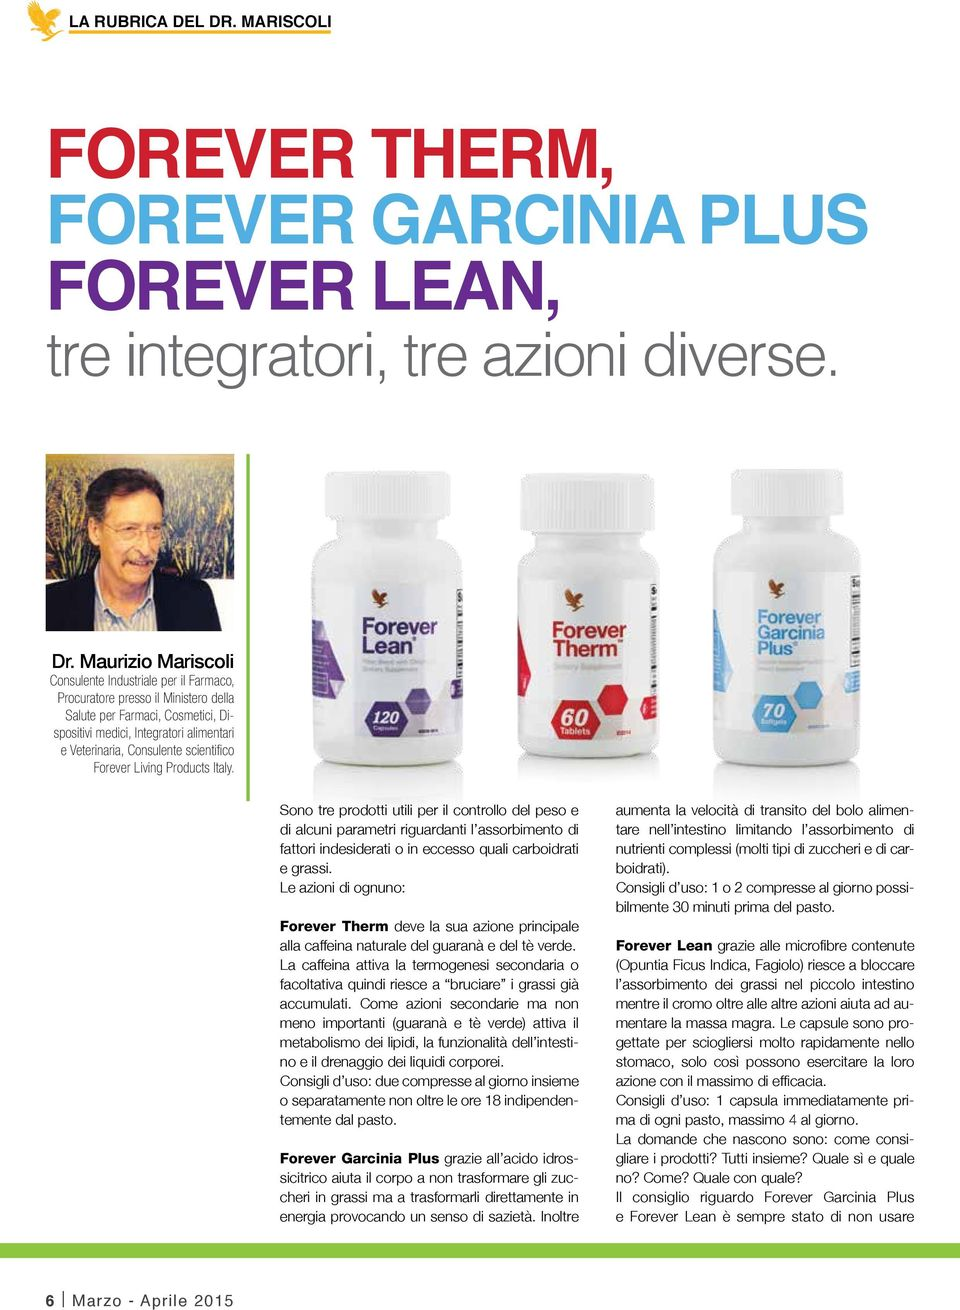 scientifico Forever Living Products Italy.